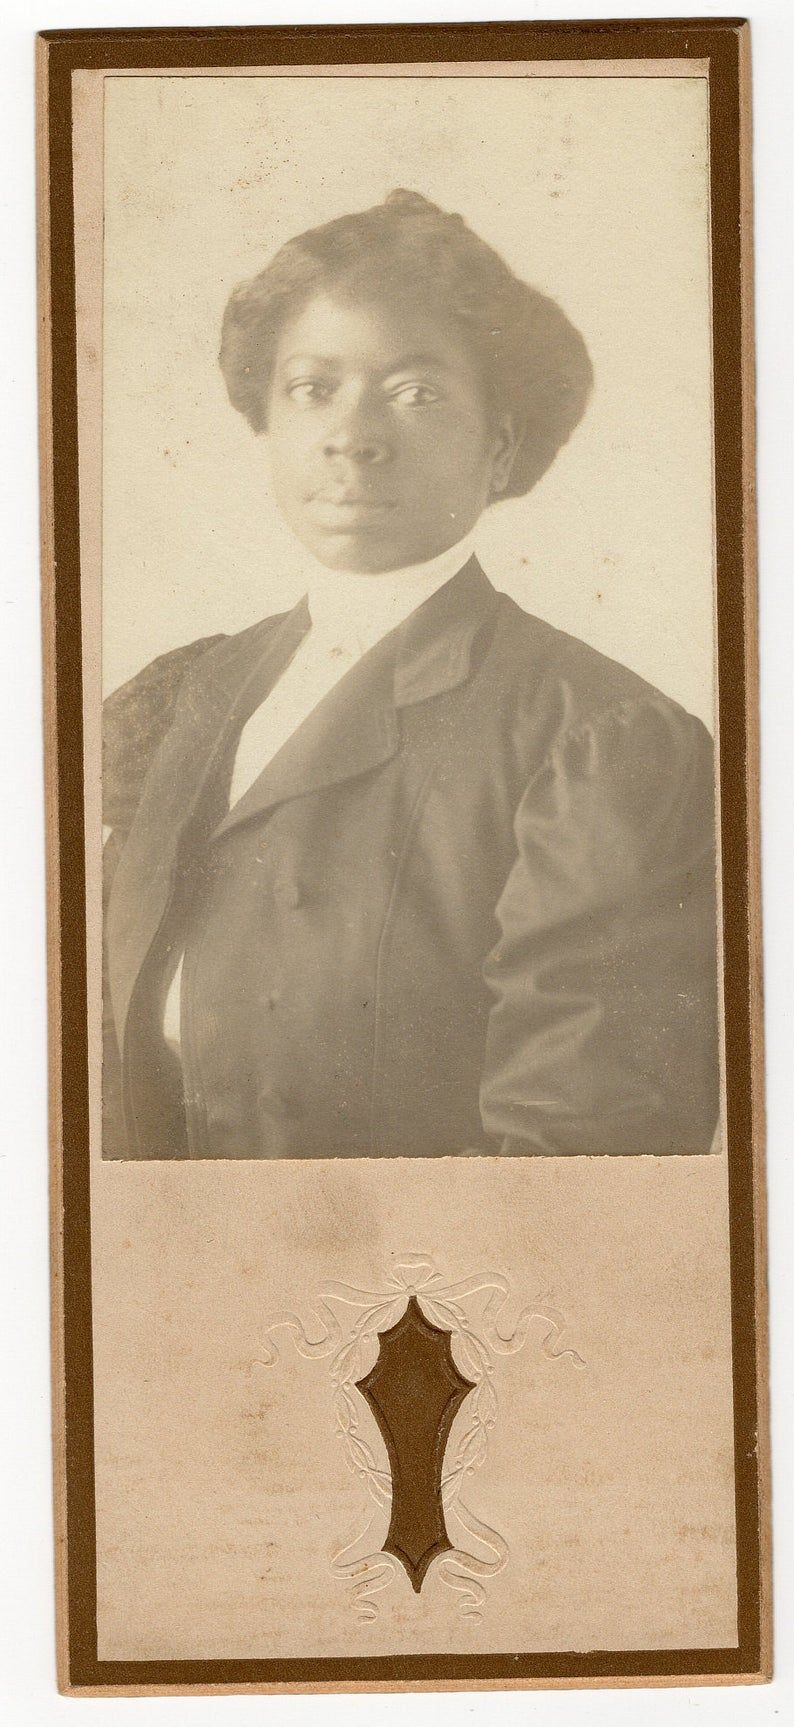 Taken Dec 25, 1908, antique african american cabinet card photo